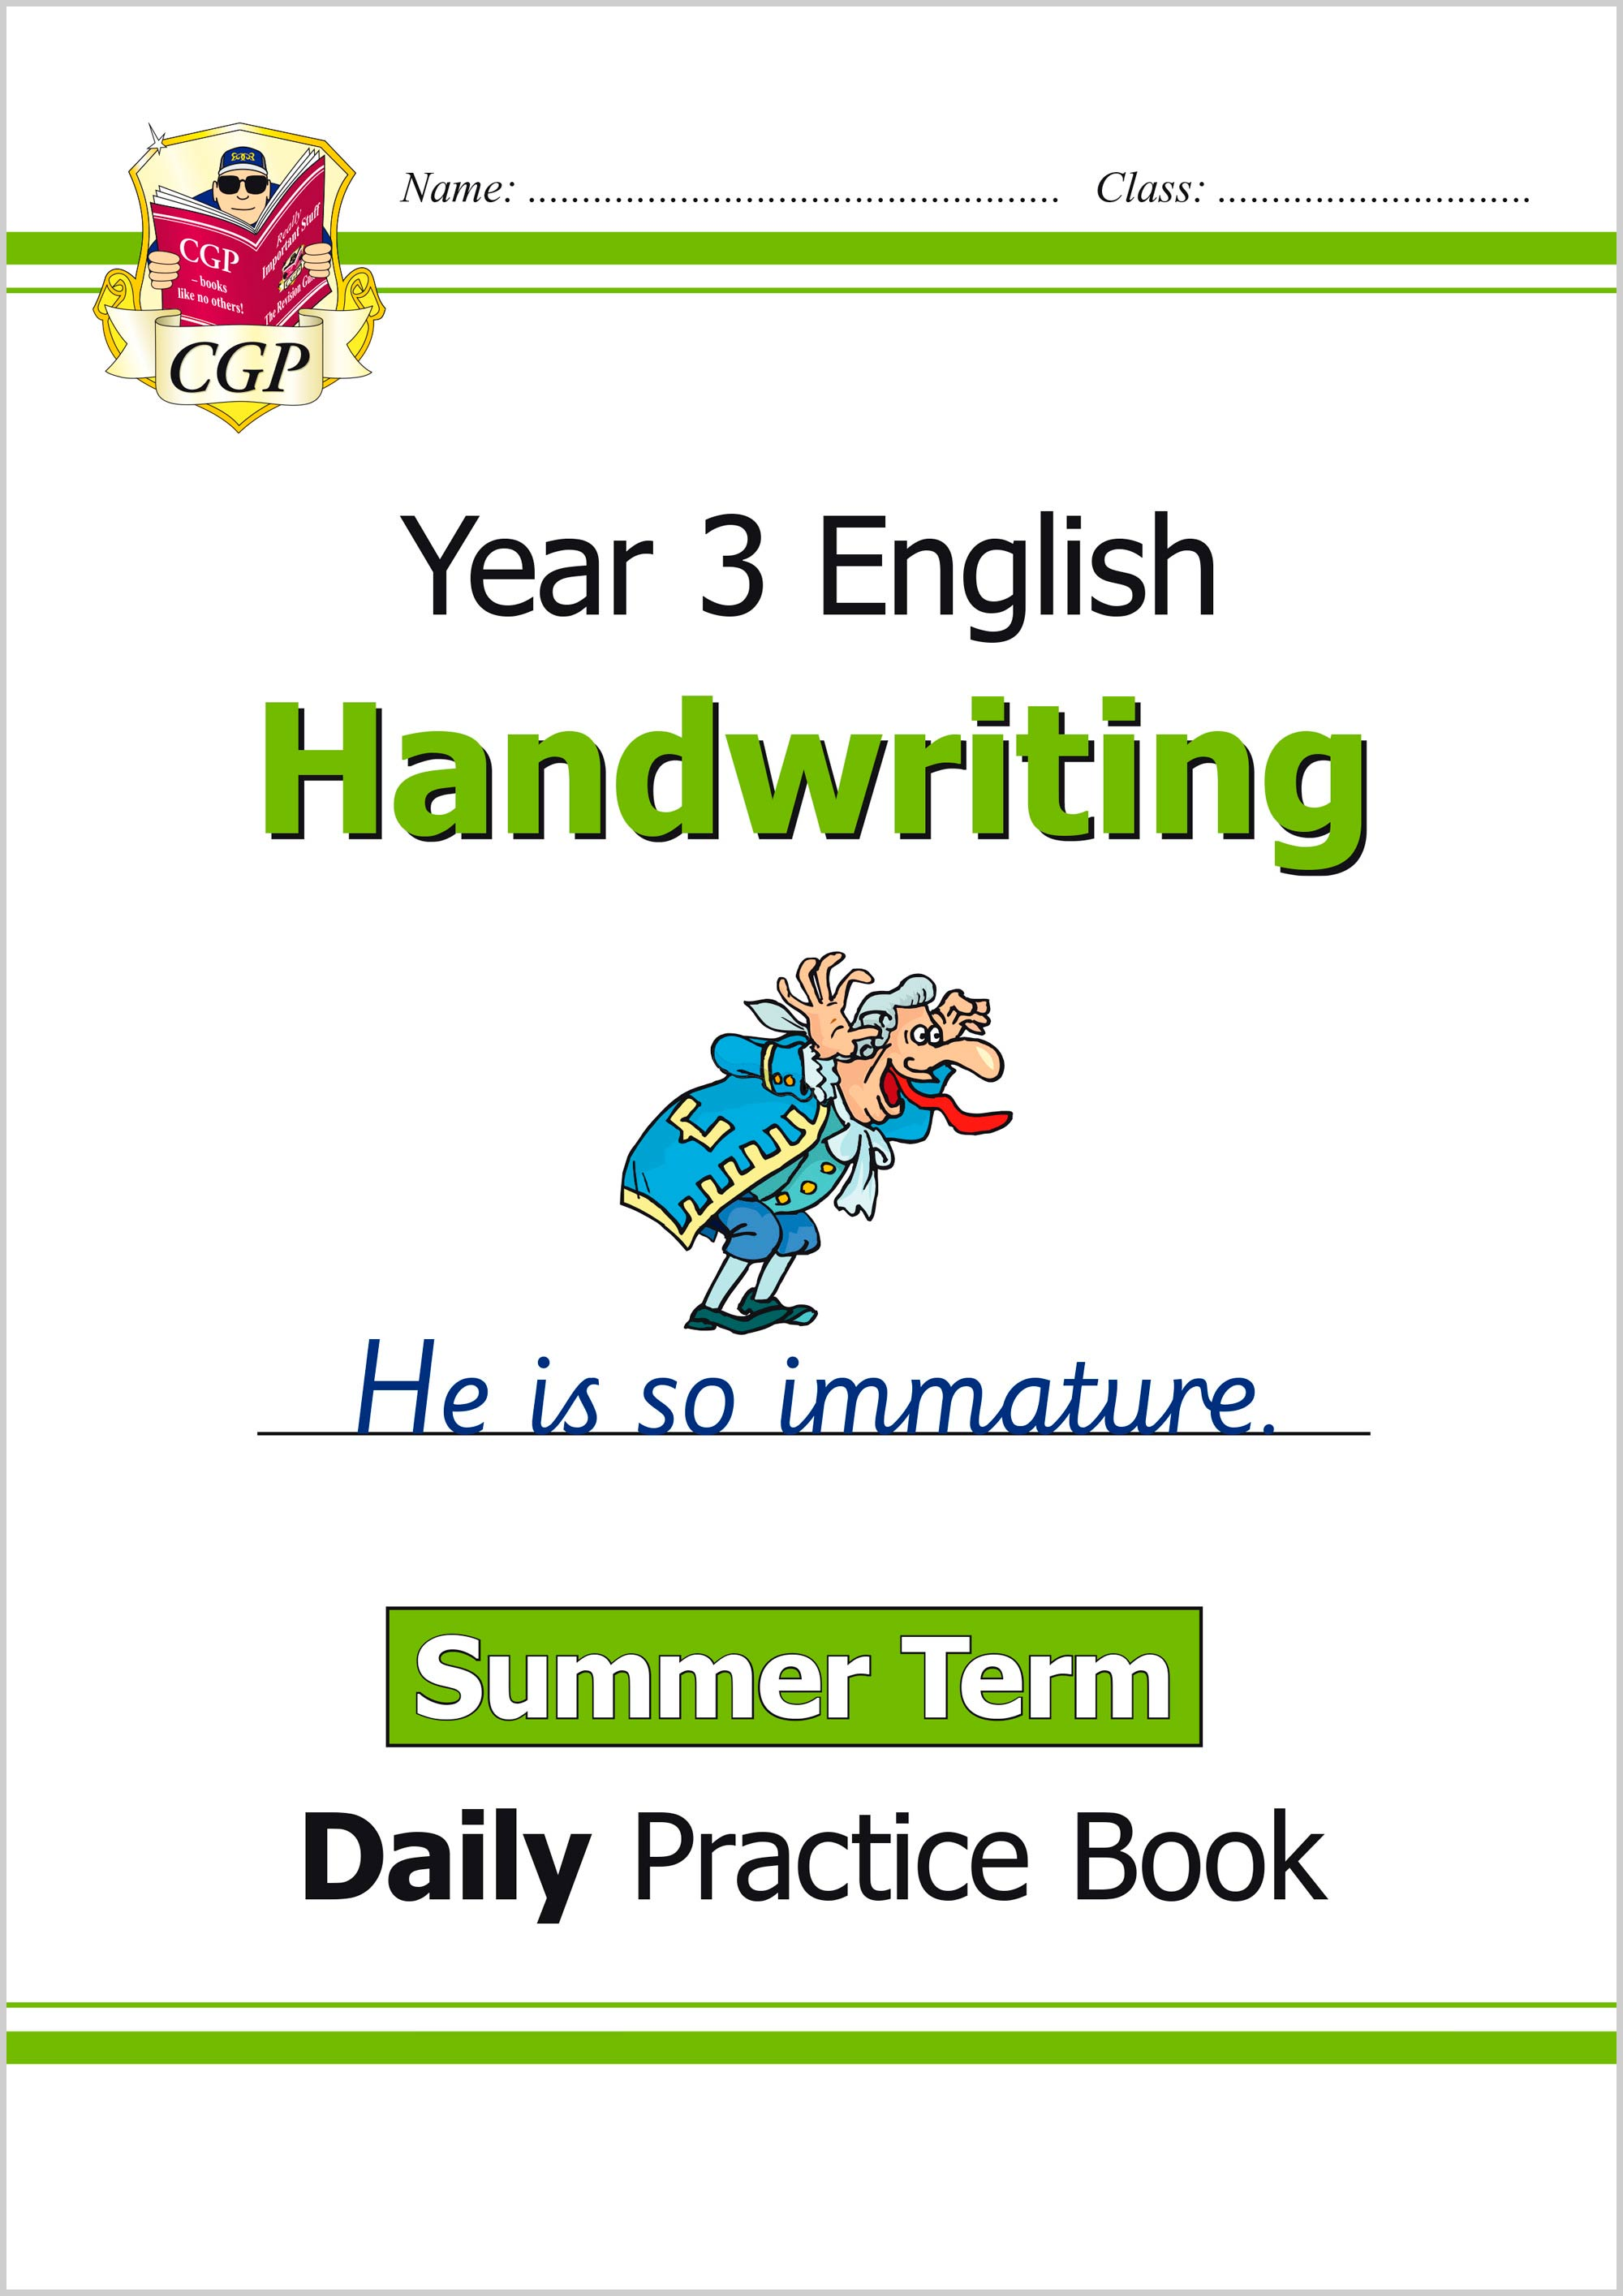 E3HWSU21 - New KS2 Handwriting Daily Practice Book: Year 3 - Summer Term